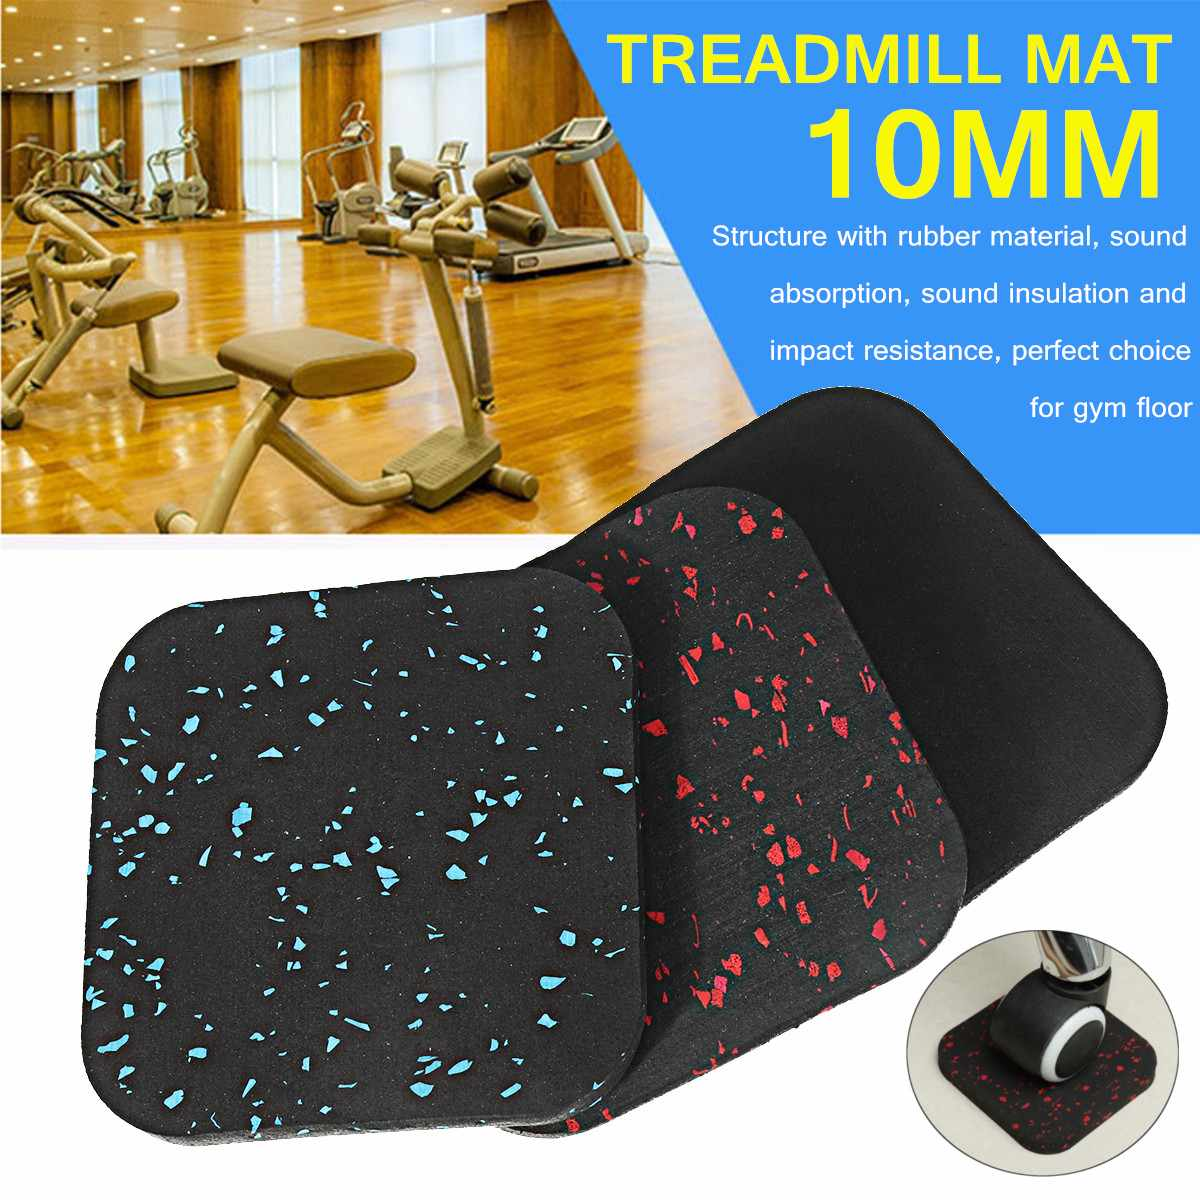 Rubber Treadmill Mat Floor Protector Shockproof Cushion Exercise Fit Gym Running Workout Fitness Equipment Accessories 10x10cm